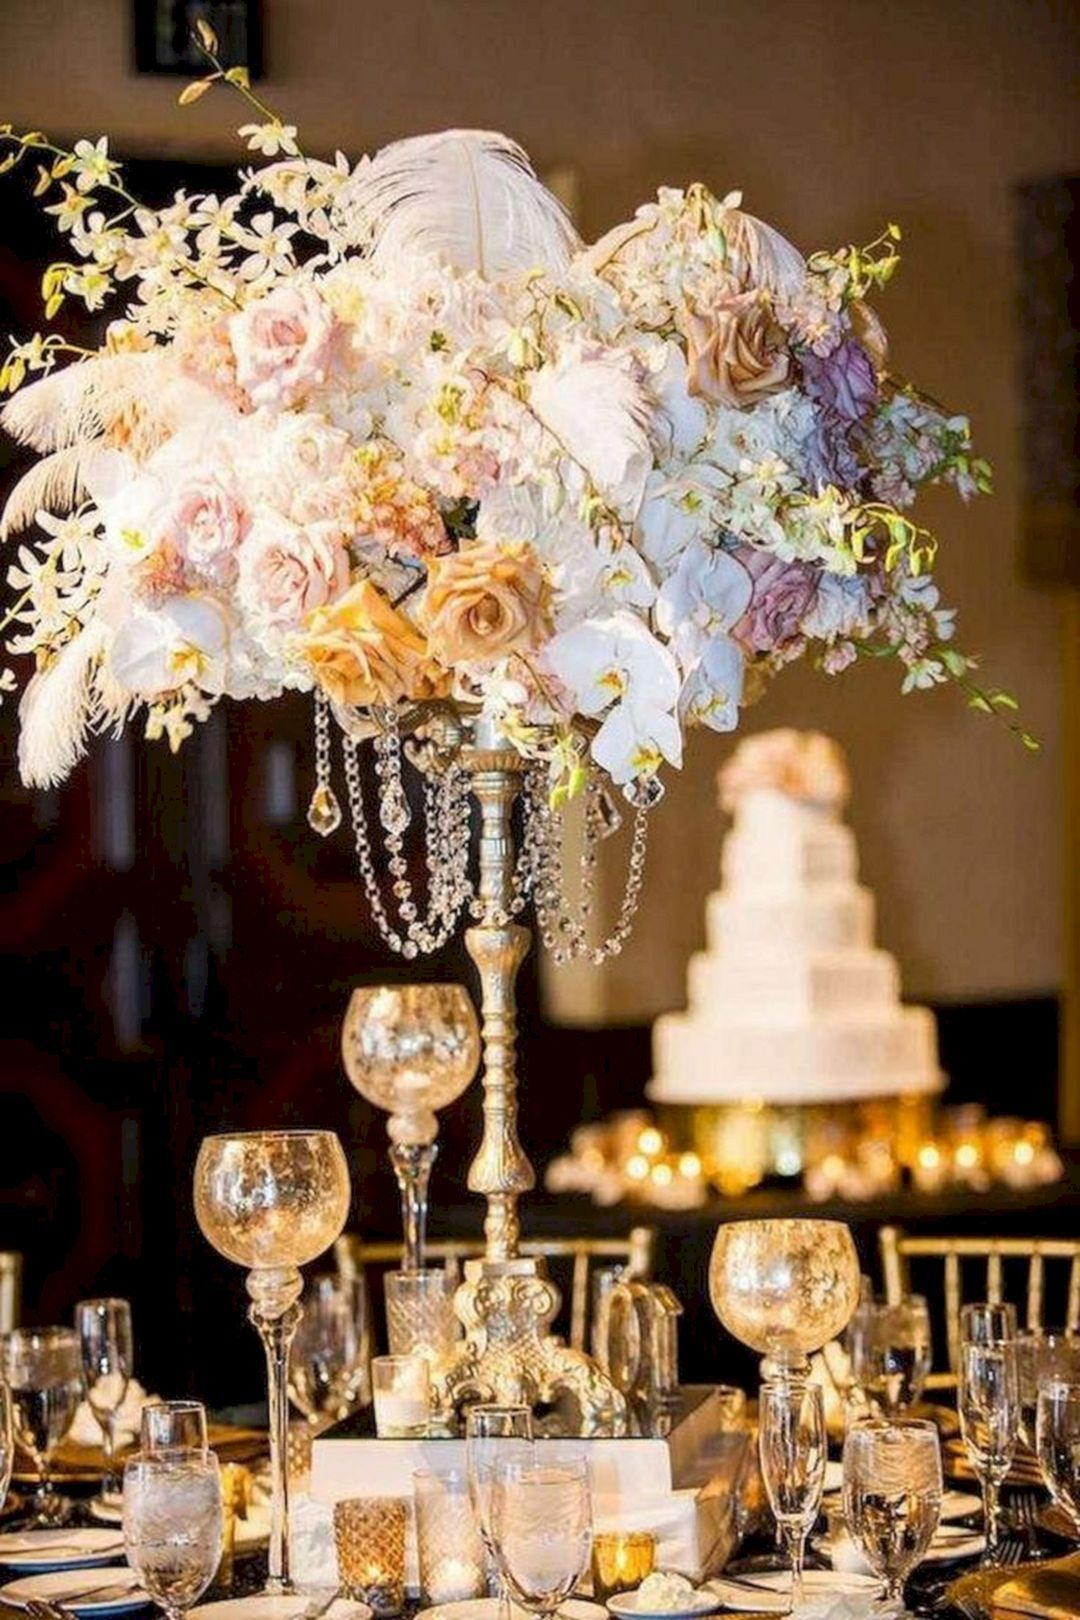 Pin on Wedding Decor Ideas